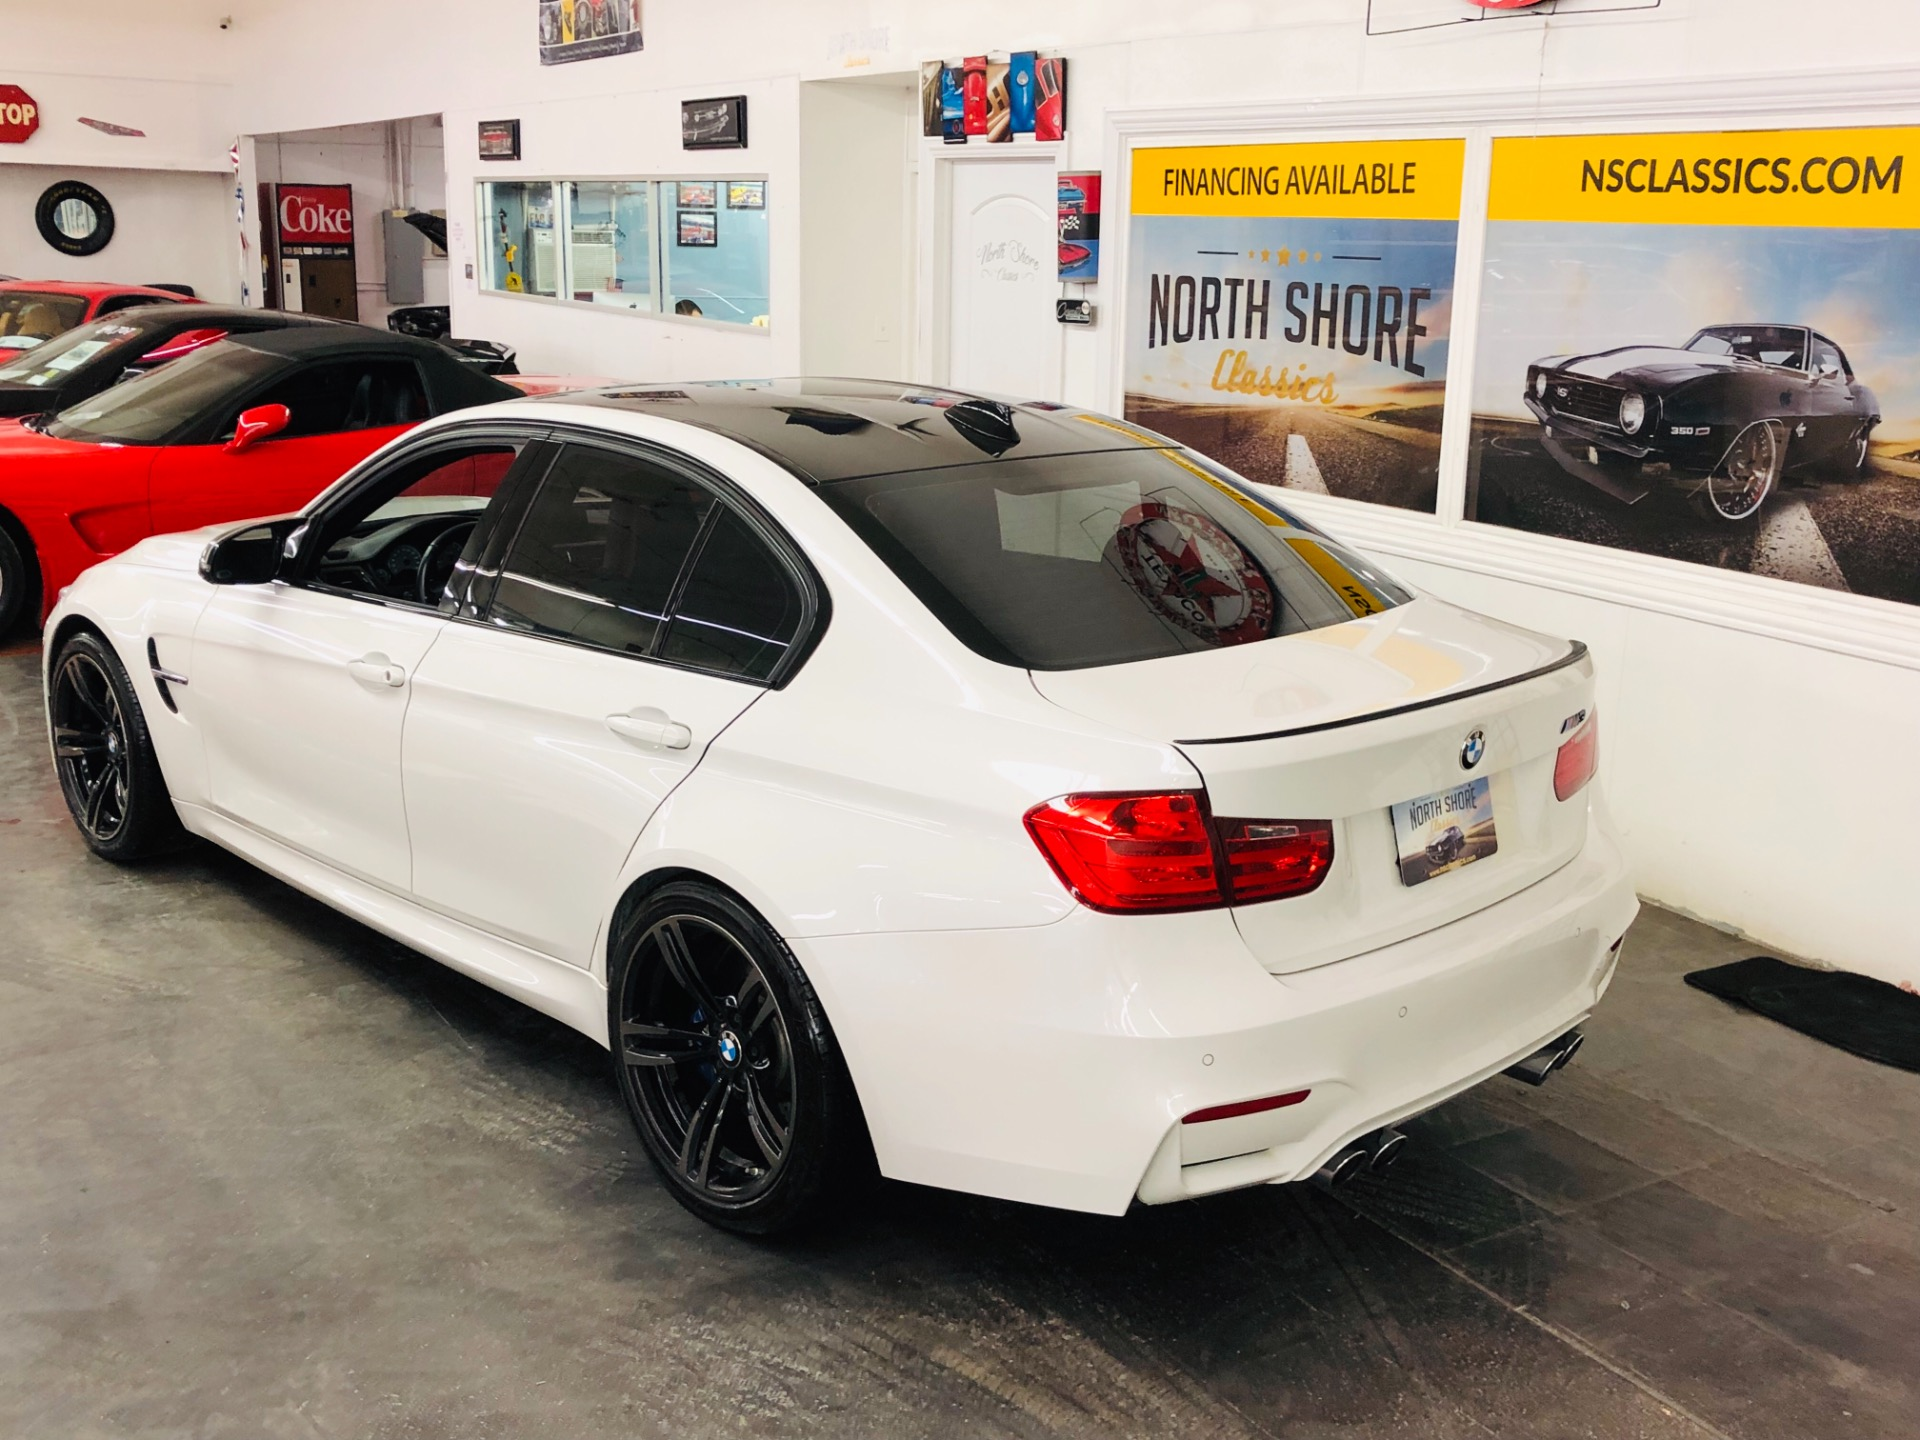 Used 2015 BMW M3 -NO HAGGLE BUY IT NOW PRICE-2 OWNER-CLEAN CARFAX-TWIN TURBO-VIDEO | Mundelein, IL